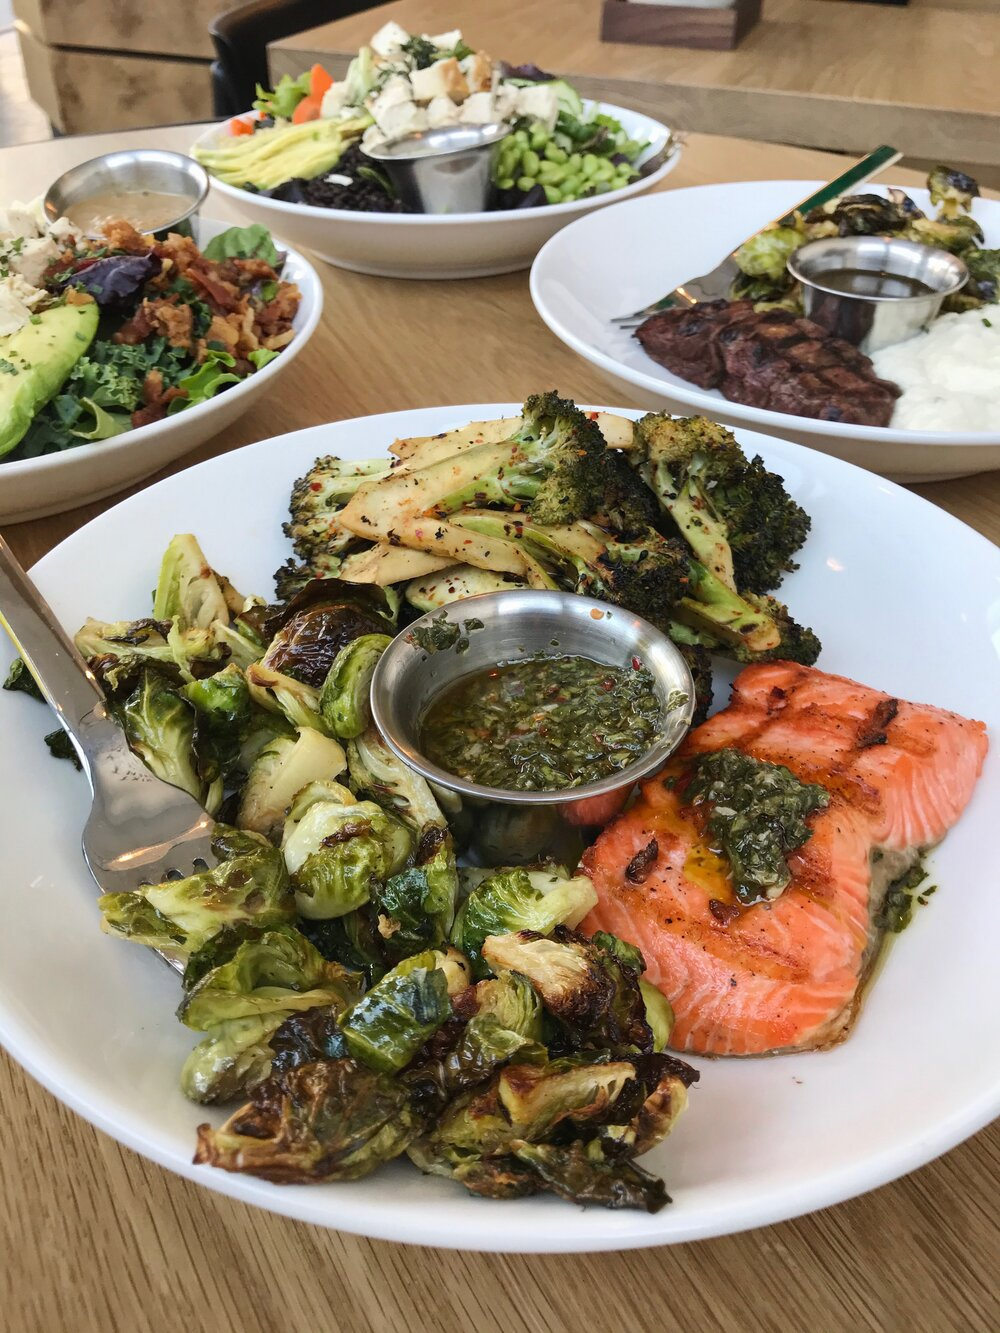 Marketplace Plate - Brussels, Broccoli, Salmon with Chimichurri